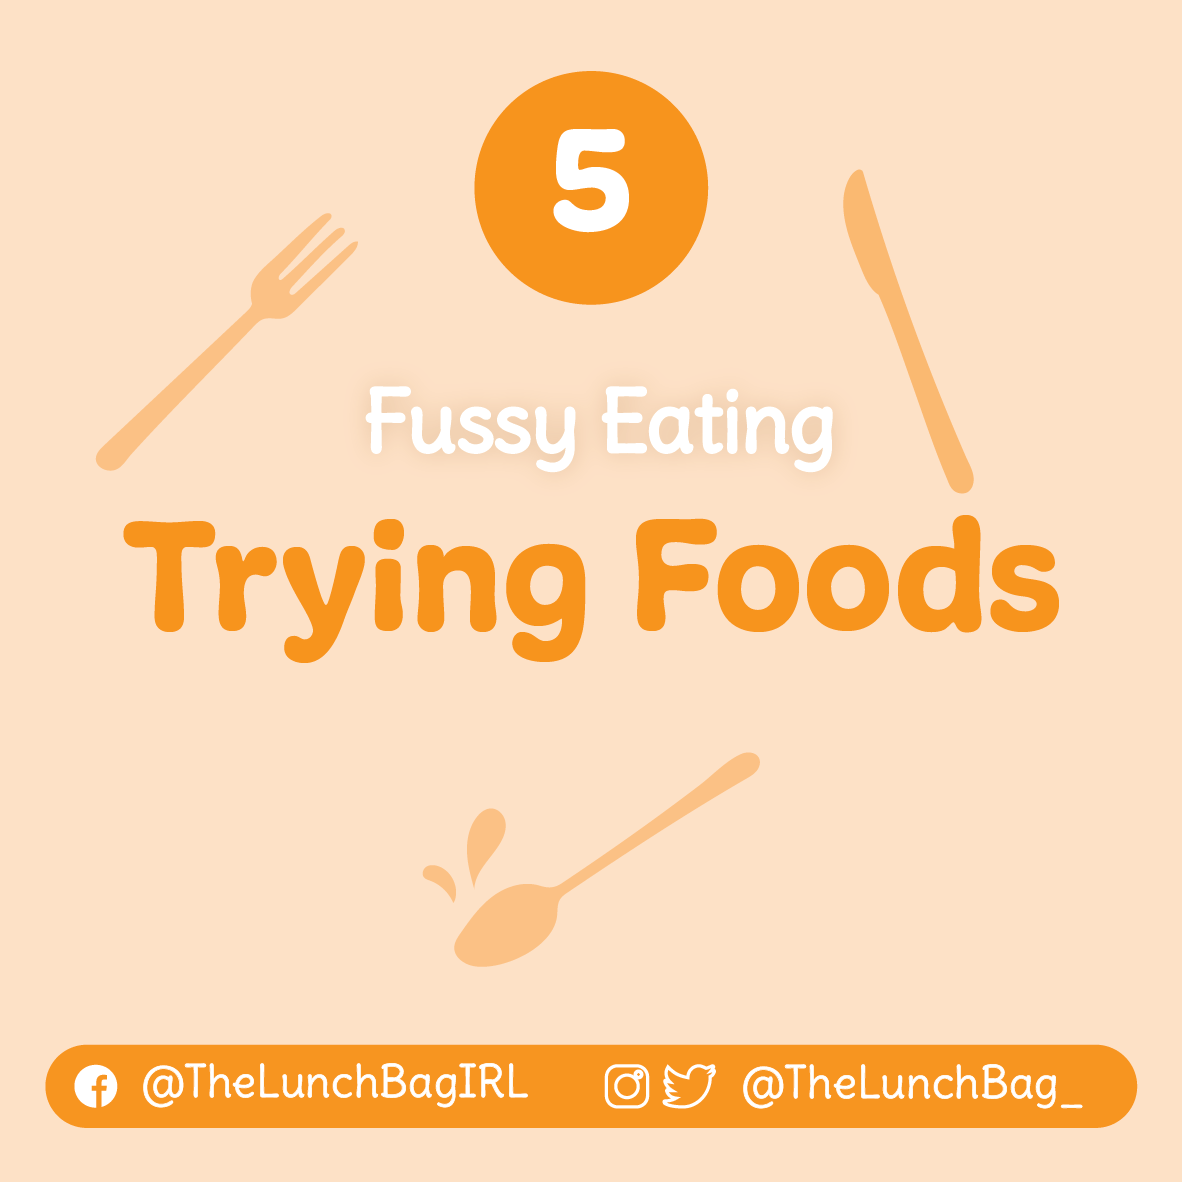 Fussy-eating-blog-trying-foods